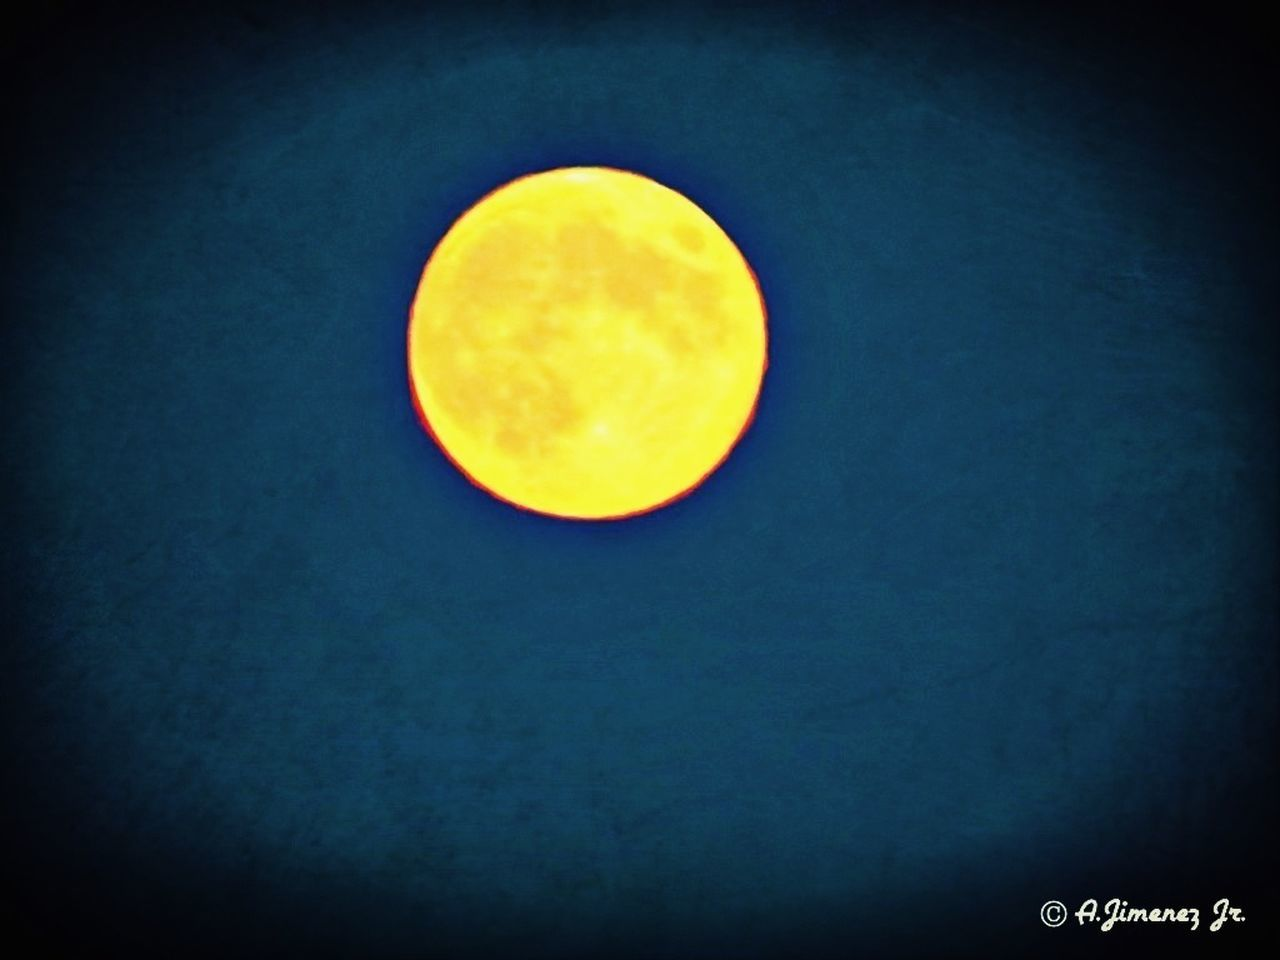 moon, circle, astronomy, no people, night, vignette, yellow, clear sky, blue, beauty in nature, nature, sky, outdoors, space